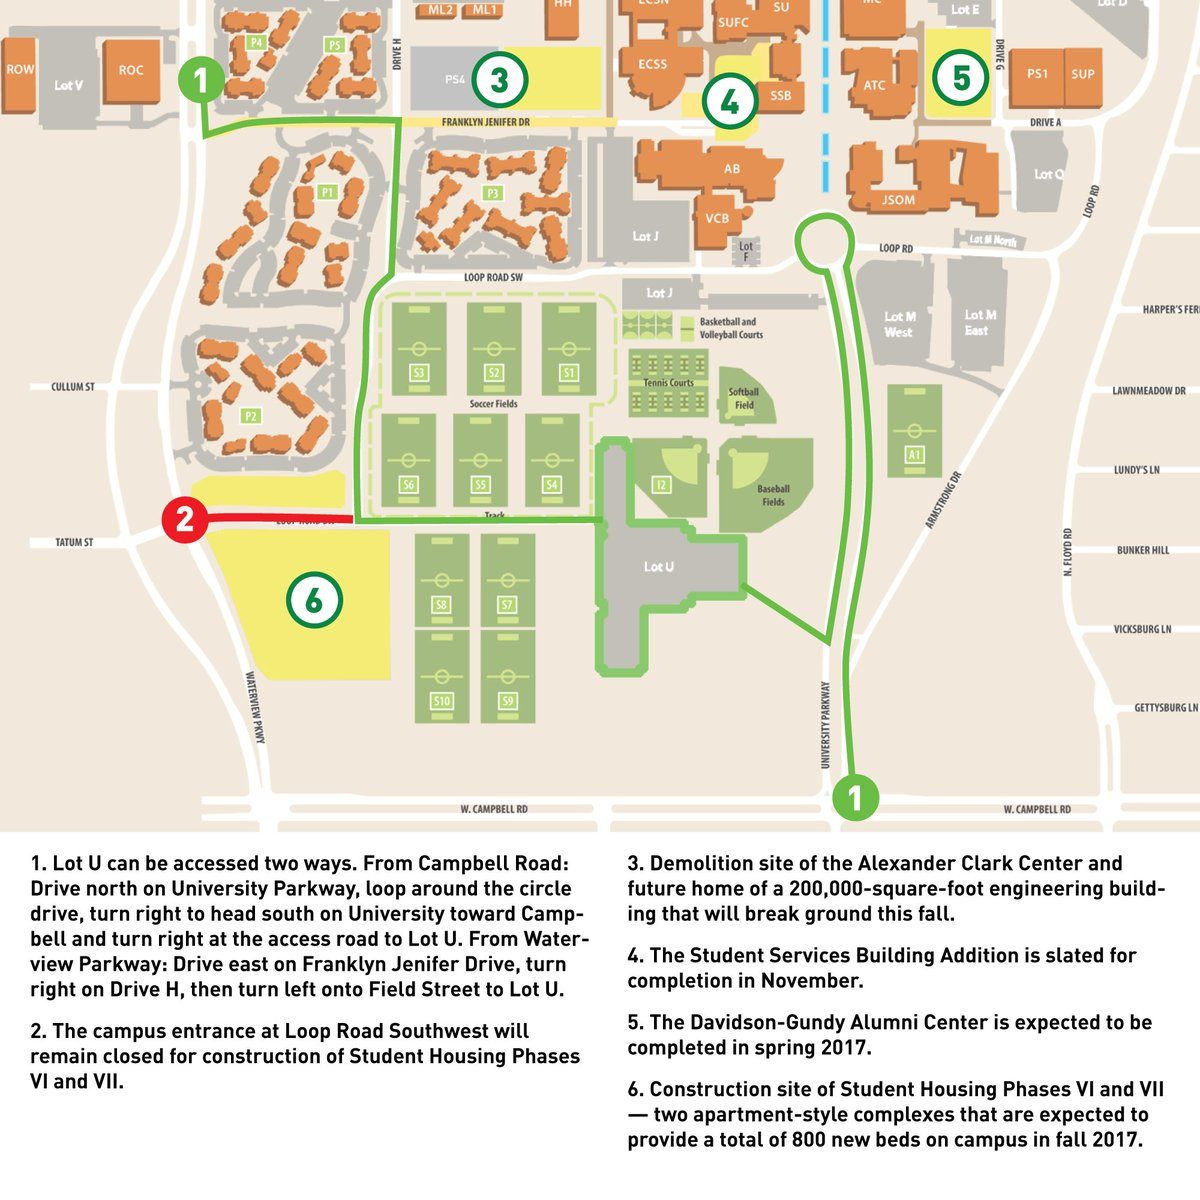 Ut Dallas Campus Map on richland college dallas texas campus map, ut dallas soccer field map, ut dallas community map, utd map, ut knox campus map, ut dallas computer science, ut health science campus map, ut southwestern dallas map, university of dallas map, ut tyler campus map, ut hospital knoxville tn map, ut dallas academics, ut martin campus map, ut dallas housing, unt dallas campus map, ut pan am campus map, ut building map, ut dallas commencement, ut dallas activity center, ut dallas library,